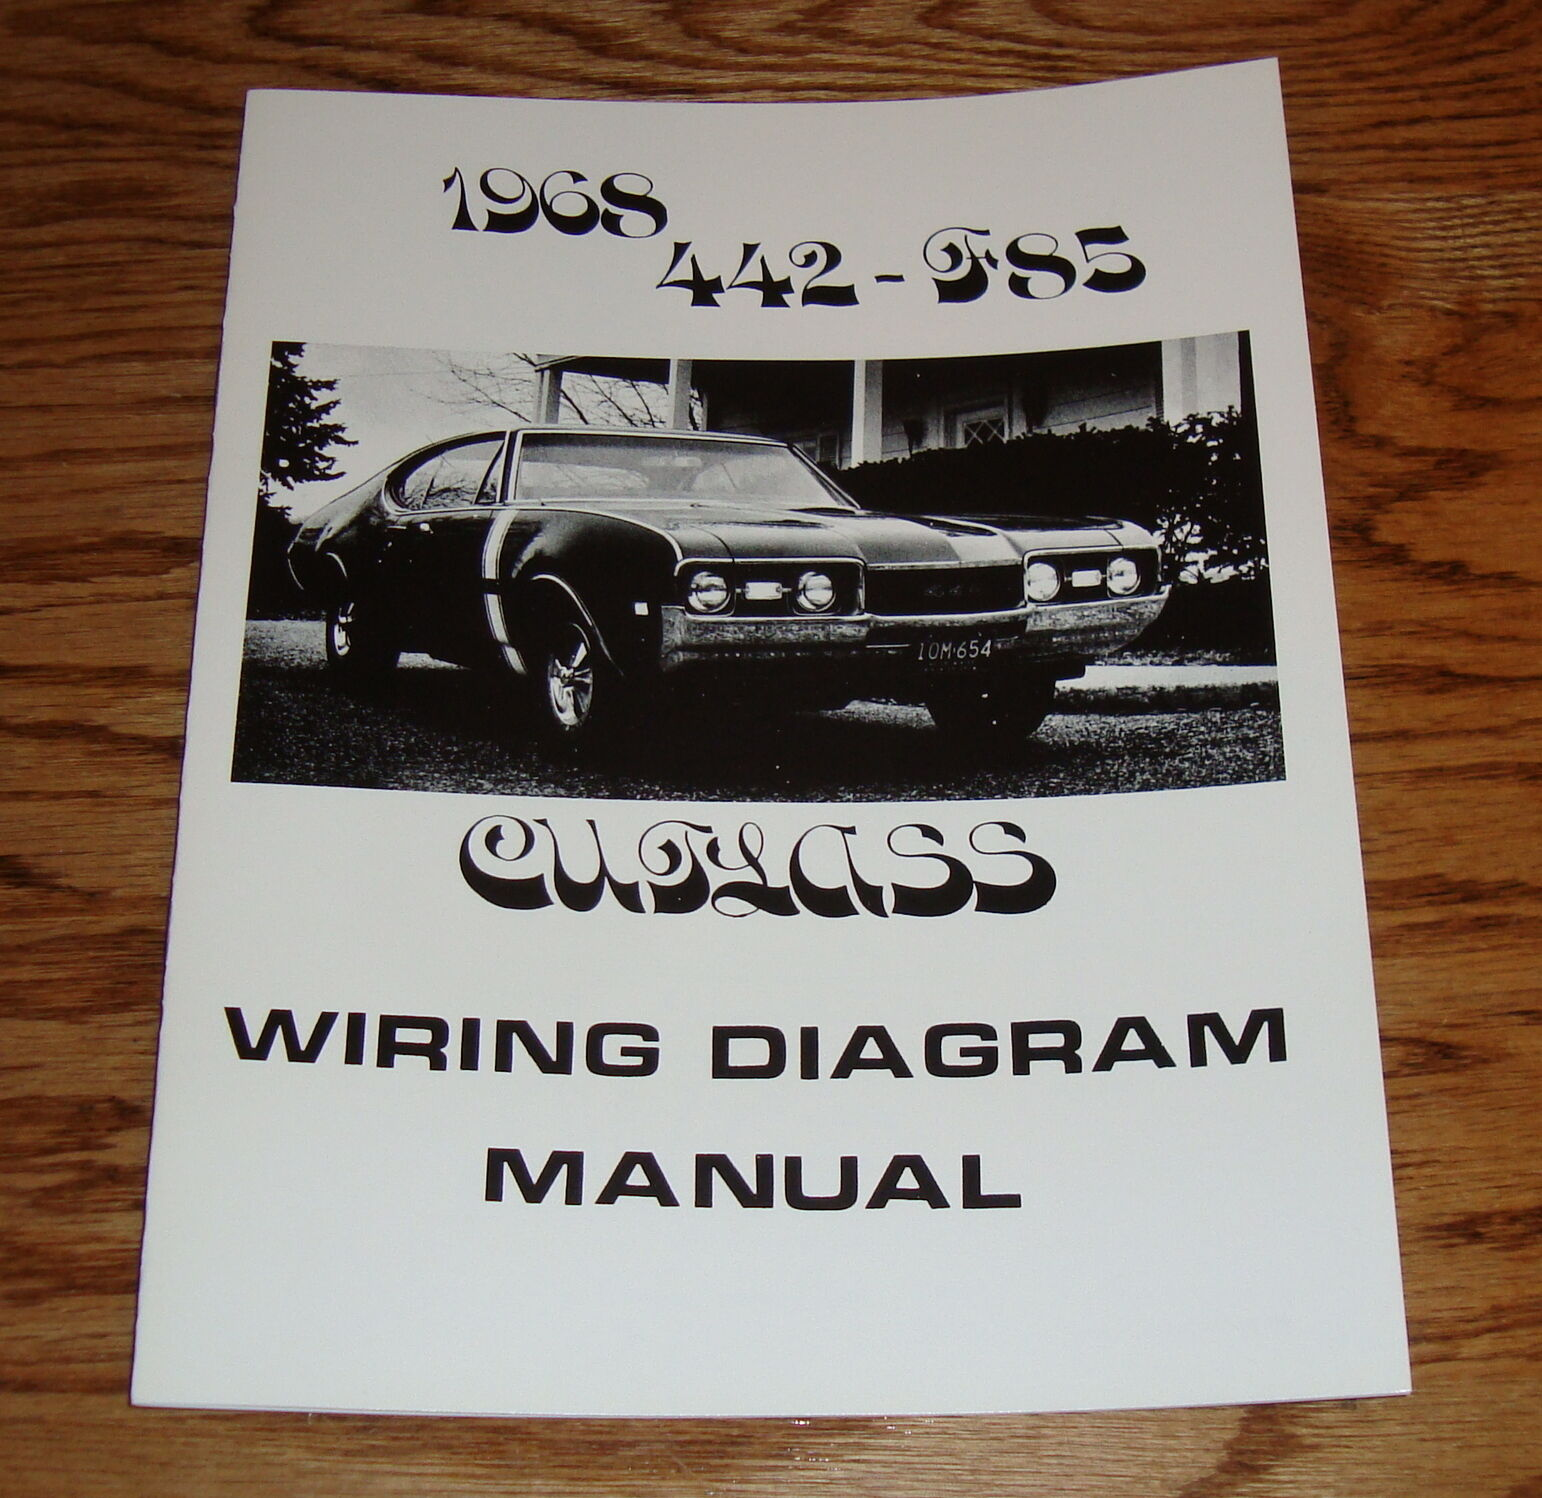 1968 Oldsmobile Cutlass 442 F85 Wiring Diagram Manual 68 900 1959 1 Of 1only 3 Available